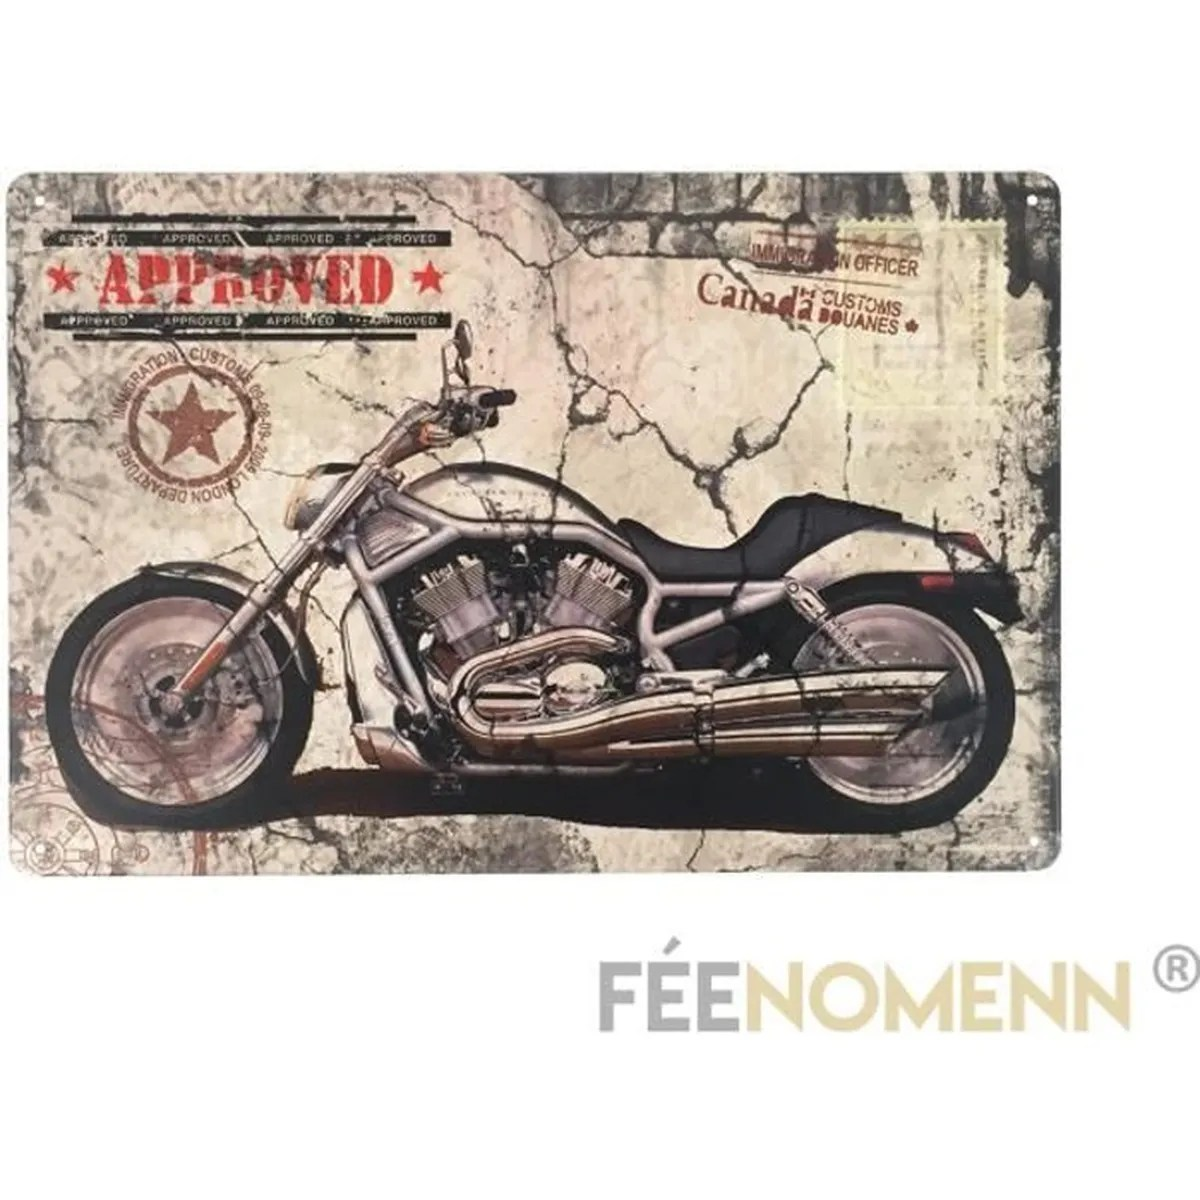 Decoration Maison Moto Plaque Métal Déco Vintage Moto Approved 20x30cm